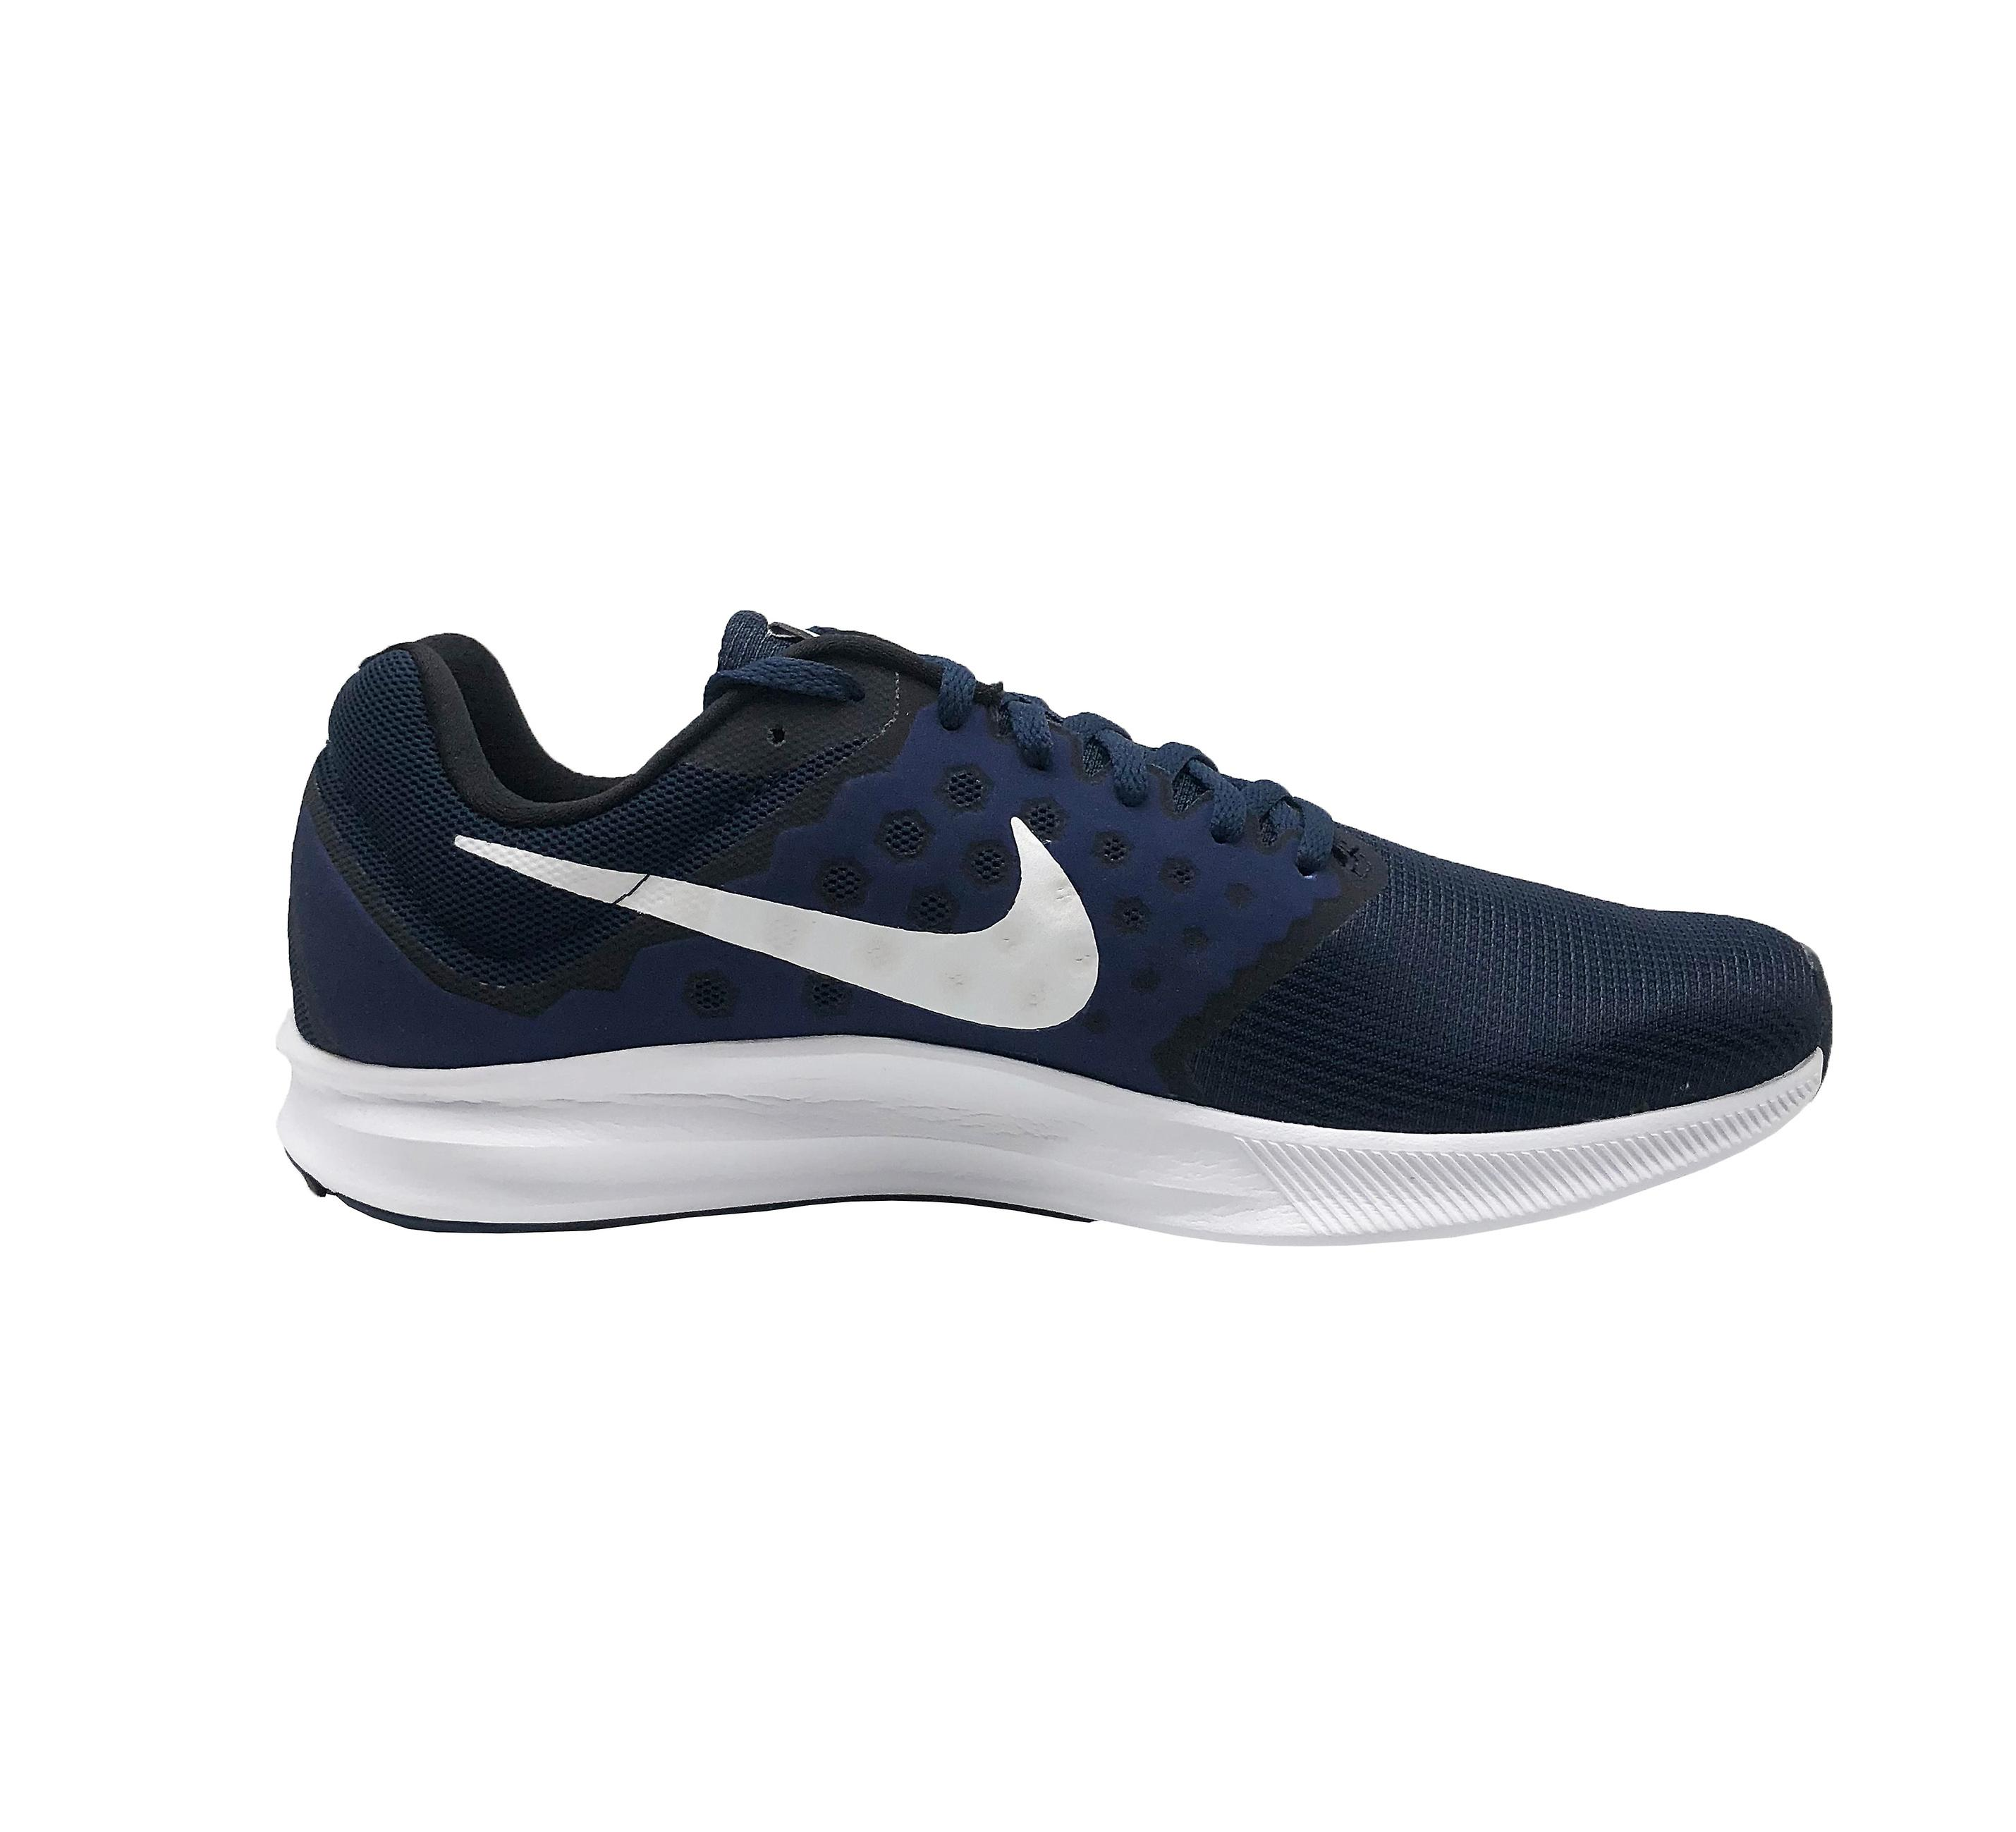 Nike Downshifter 7 852459 400 mens Trainers